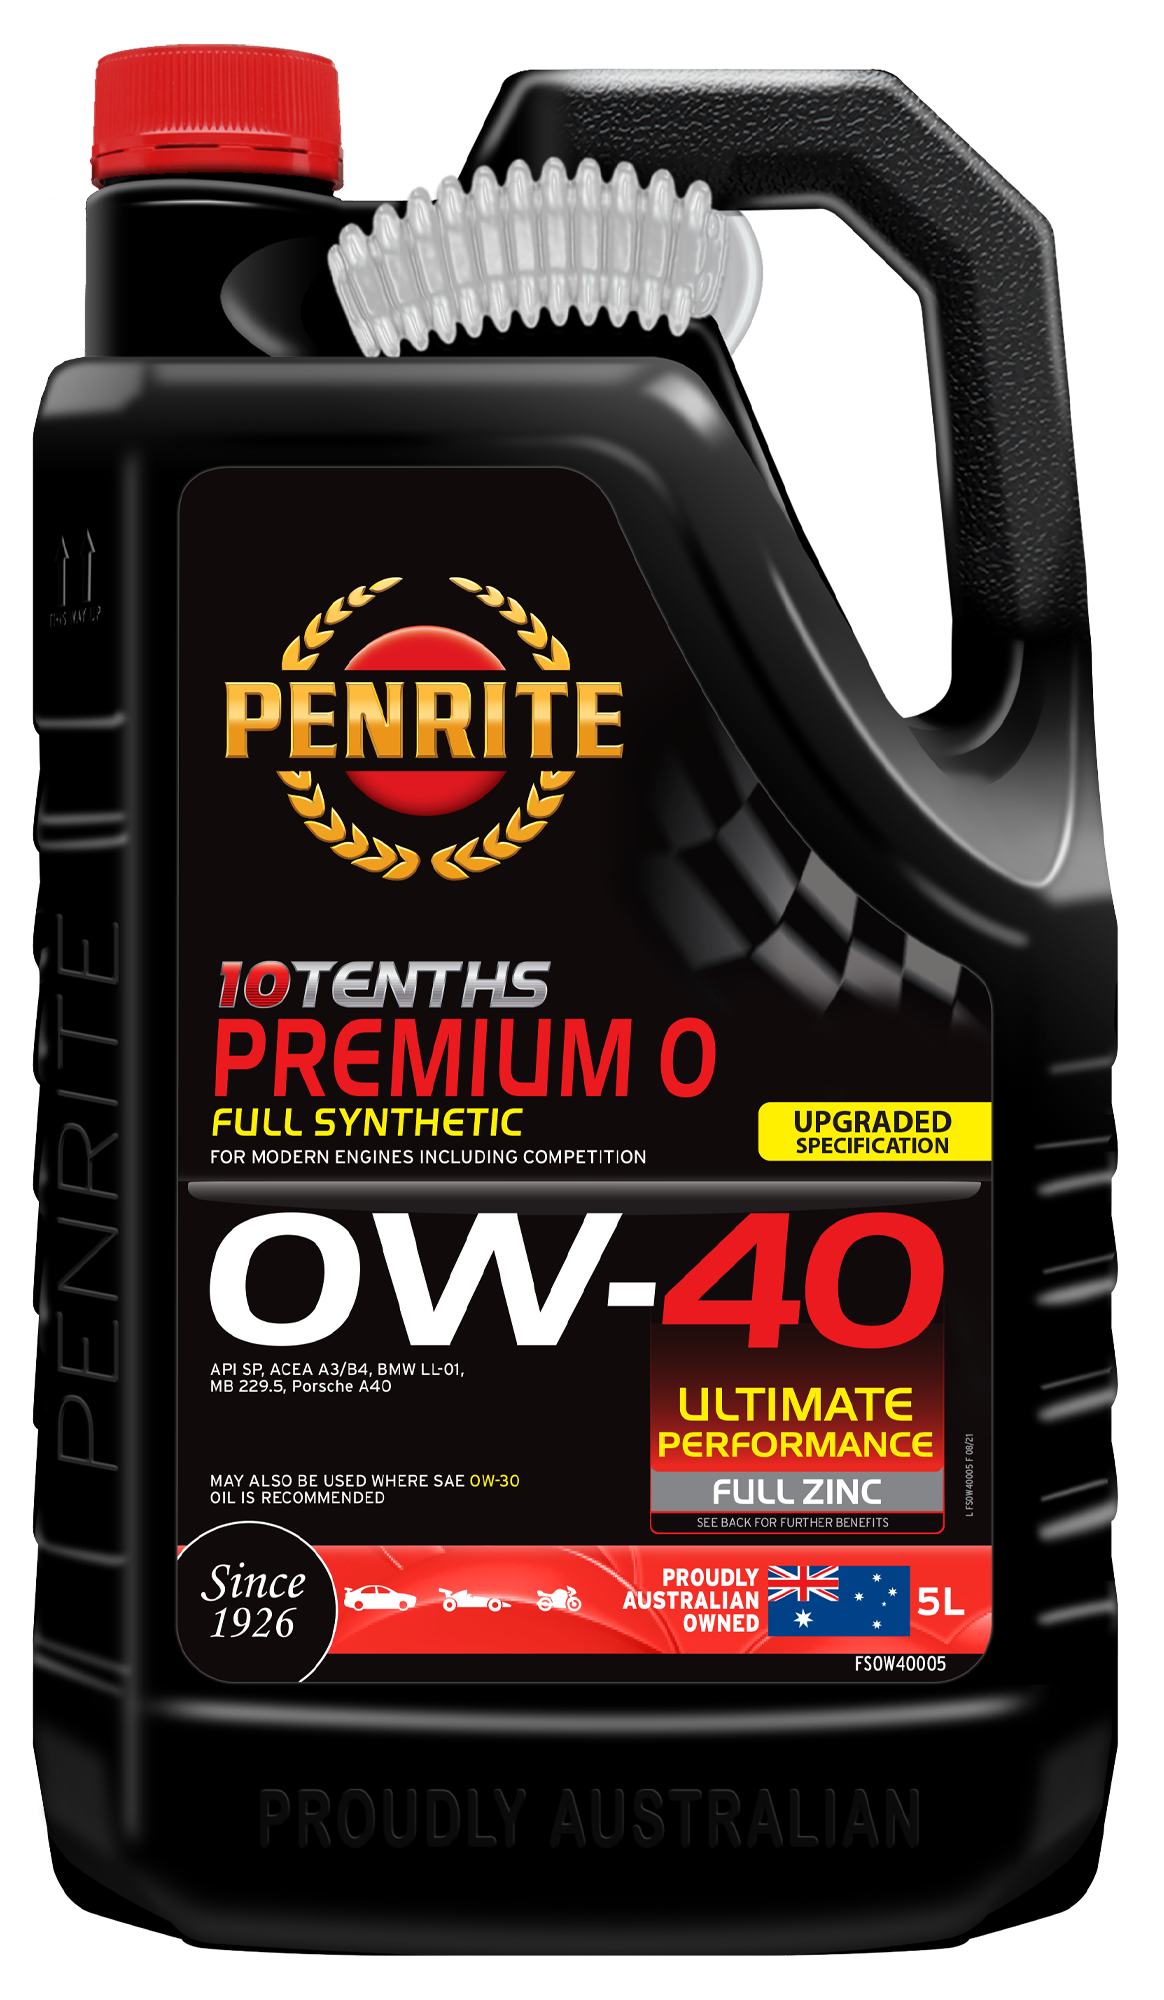 Bmw Recommended Oil >> 10 Tenths Premium 0w 40 Full Synthetic Penrite Oil